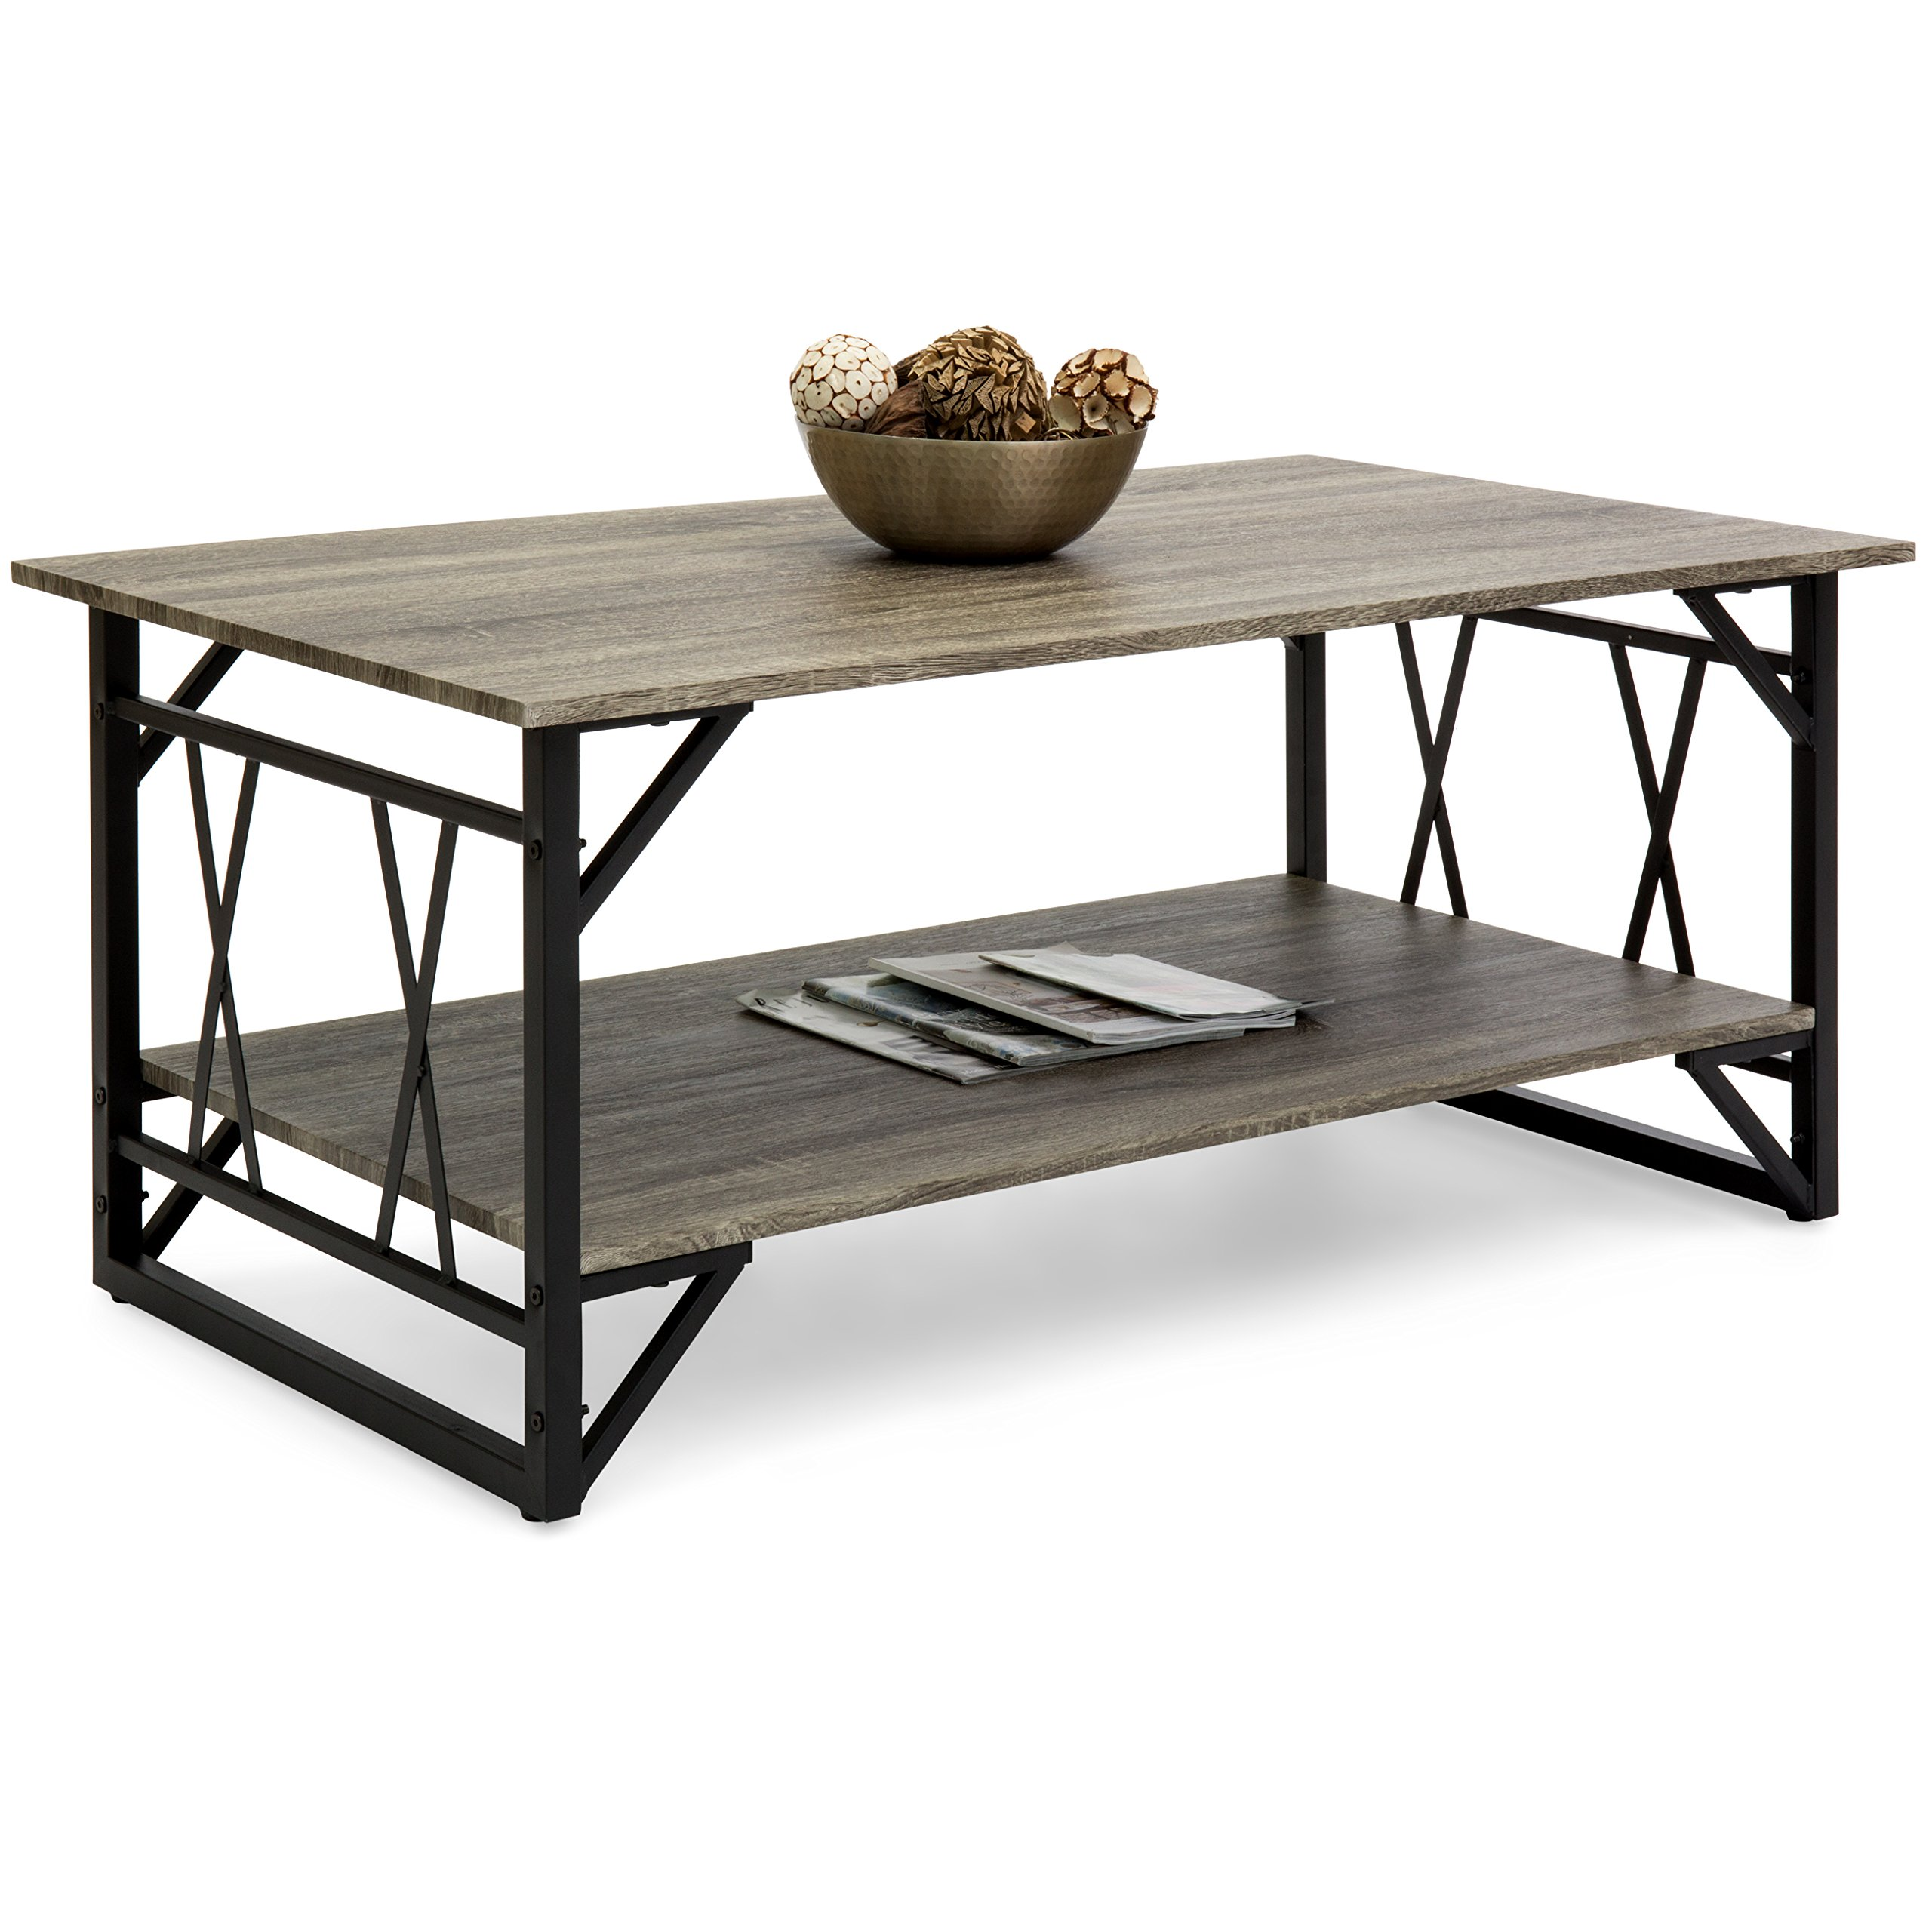 Best Choice Products Wooden Modern Contemporary Coffee Table for Living Room, Office w/Open Shelf Storage, Metal Legs, Gray by Best Choice Products